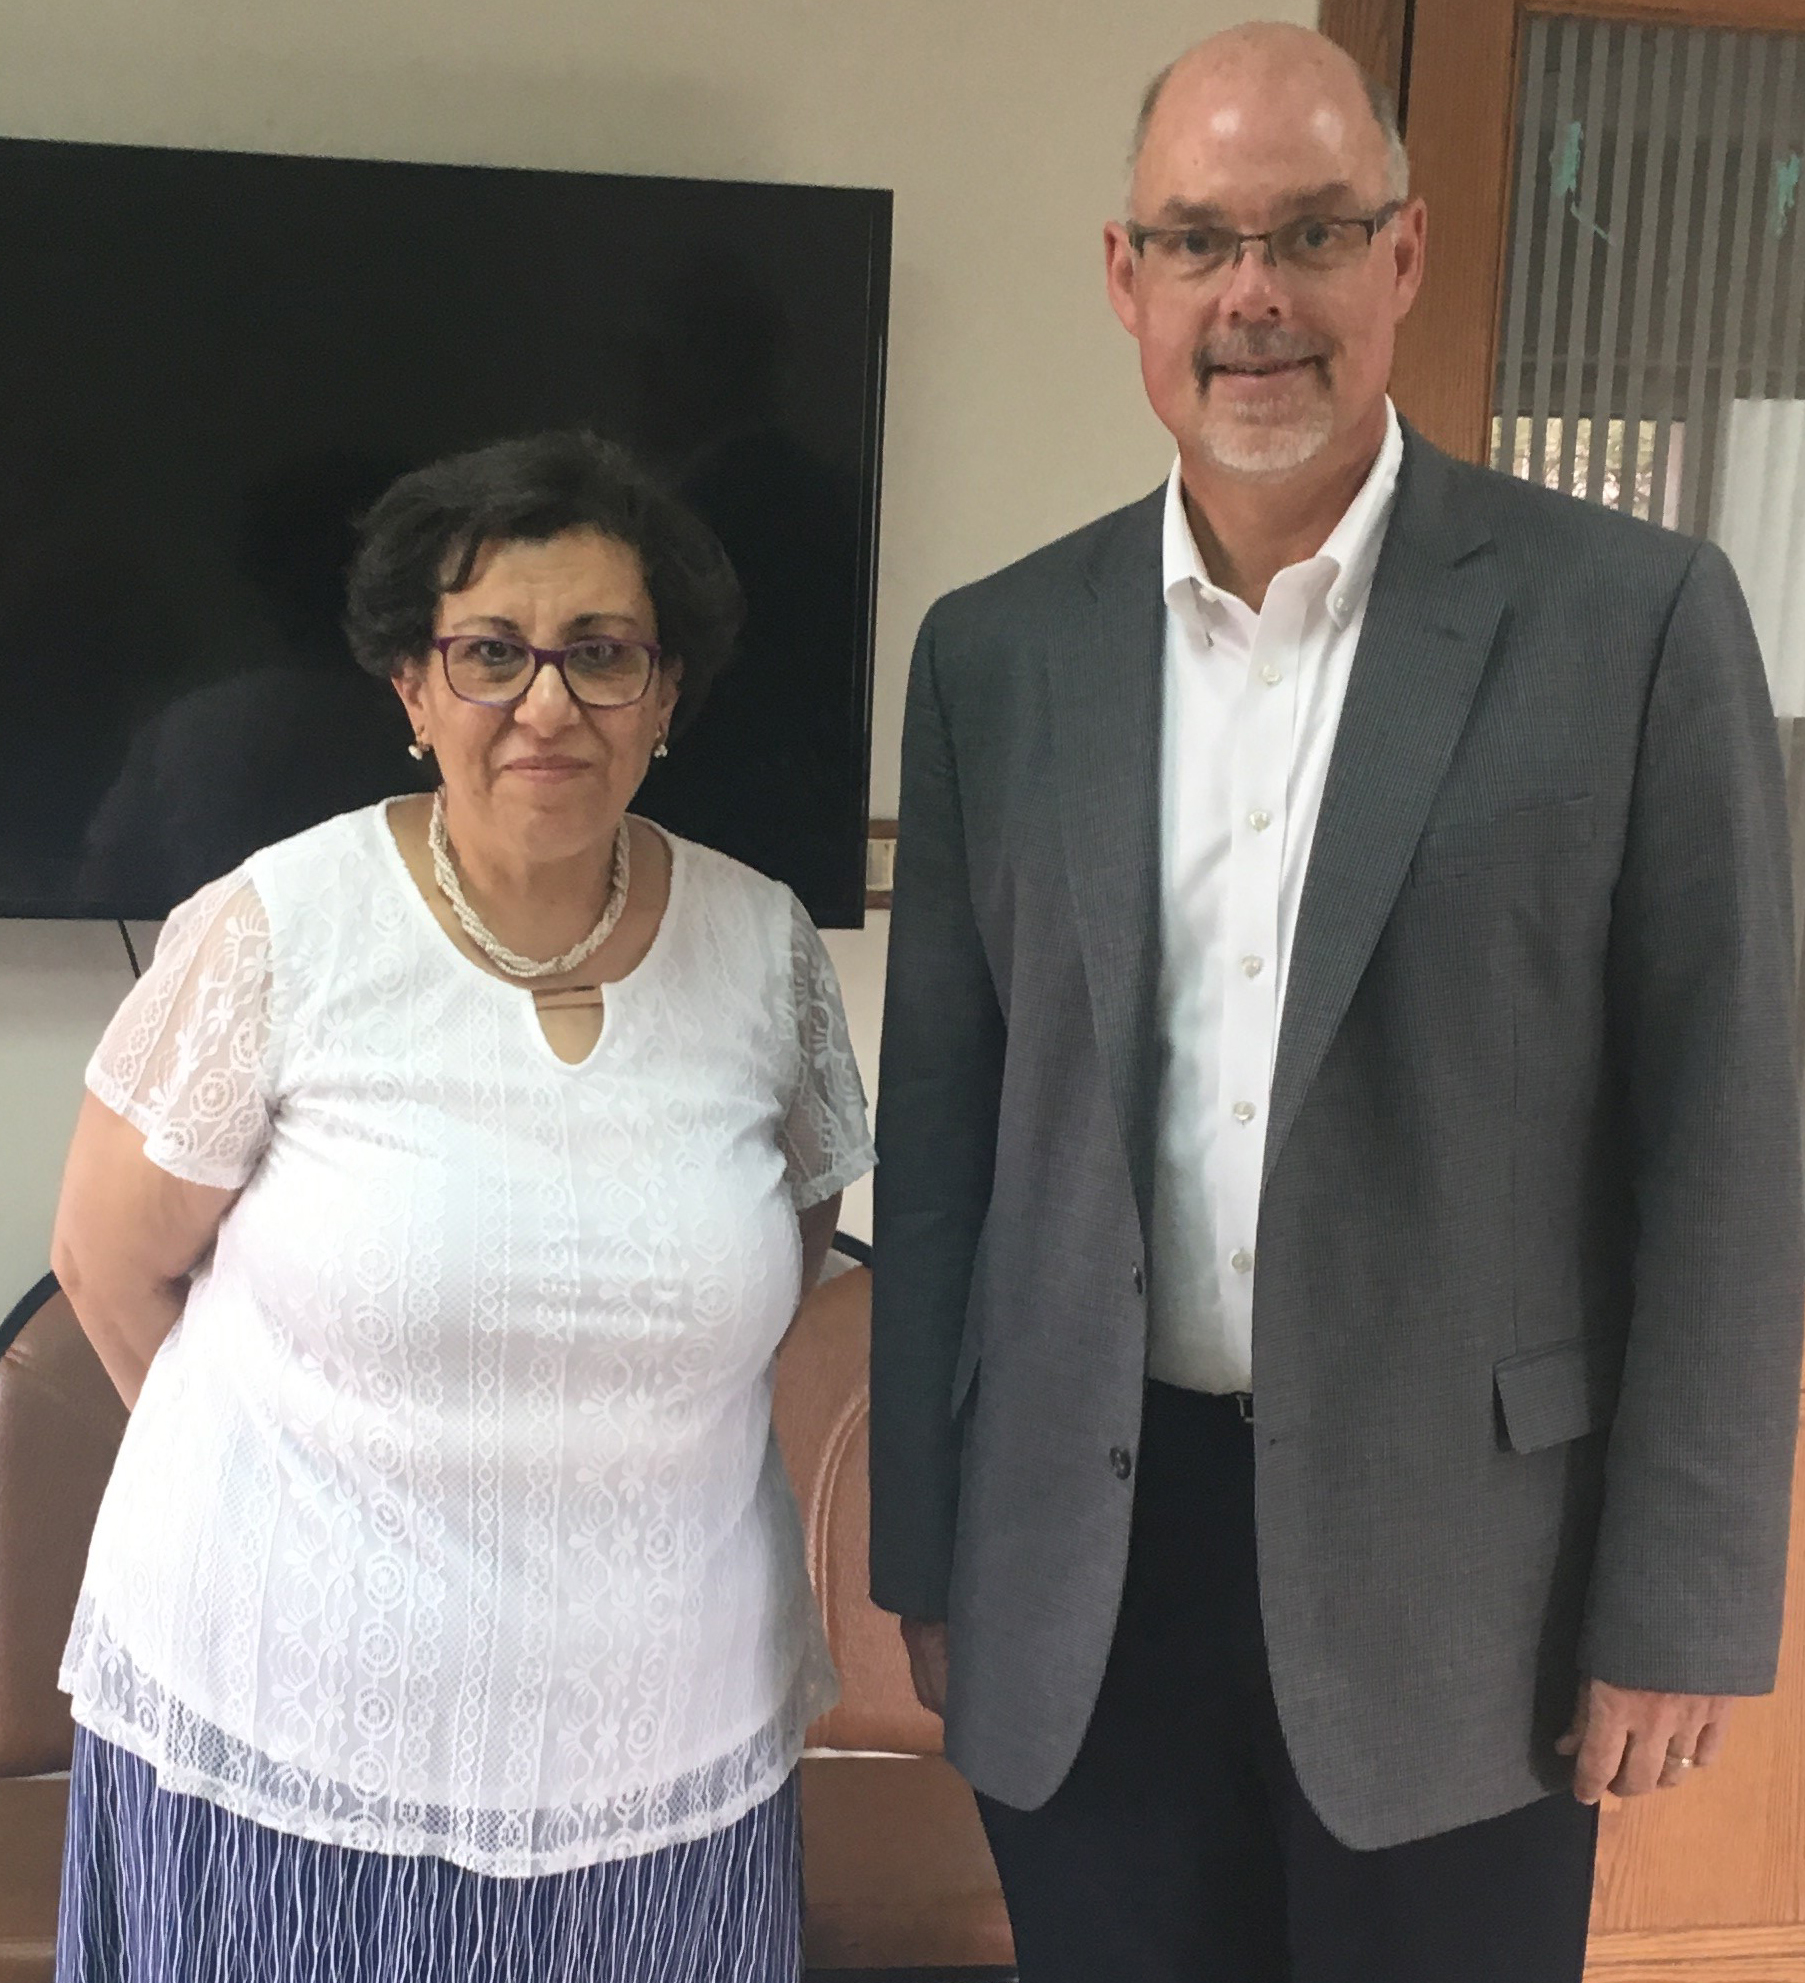 Dr. Waffaa Wahba (translator) and Greg Yoder (President, Keys for Kids)